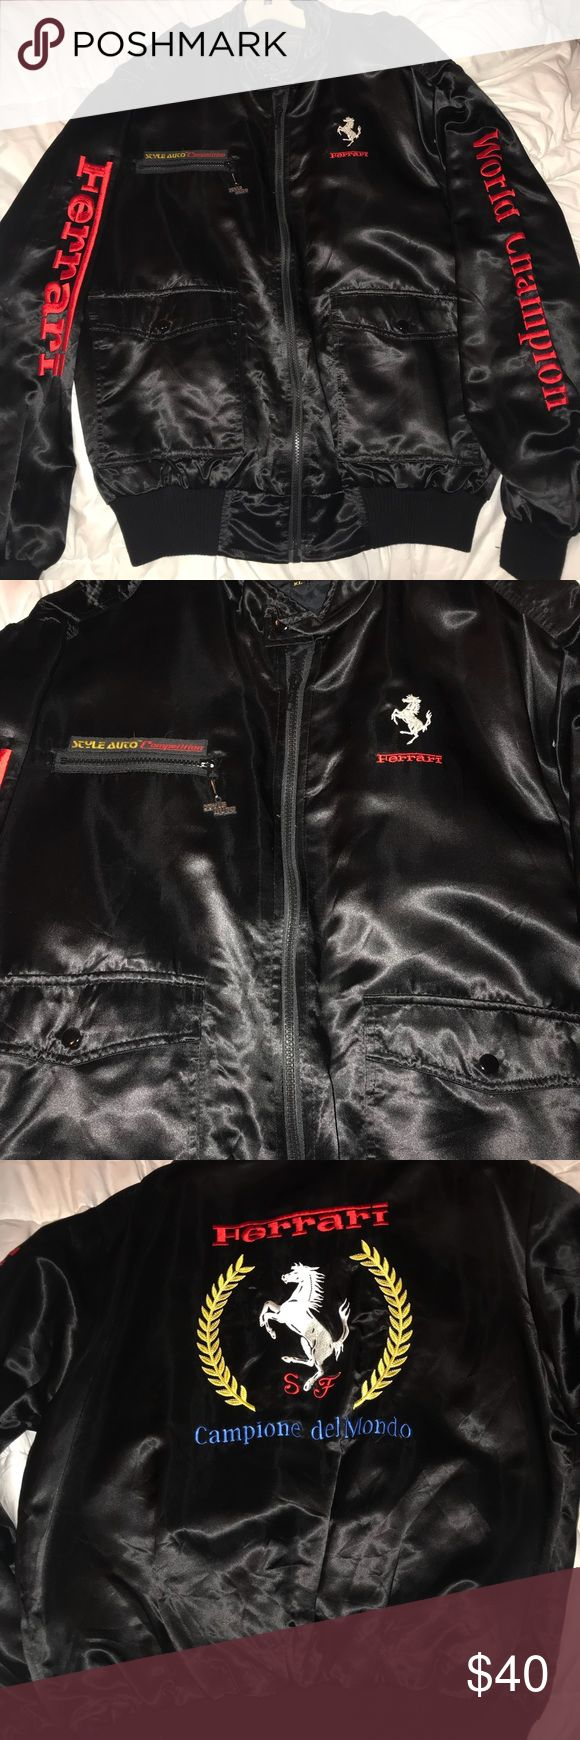 Style Auto Ferrari Racing Jacket Never worn - not sure of actual price, was a gift. Jackets & Coats